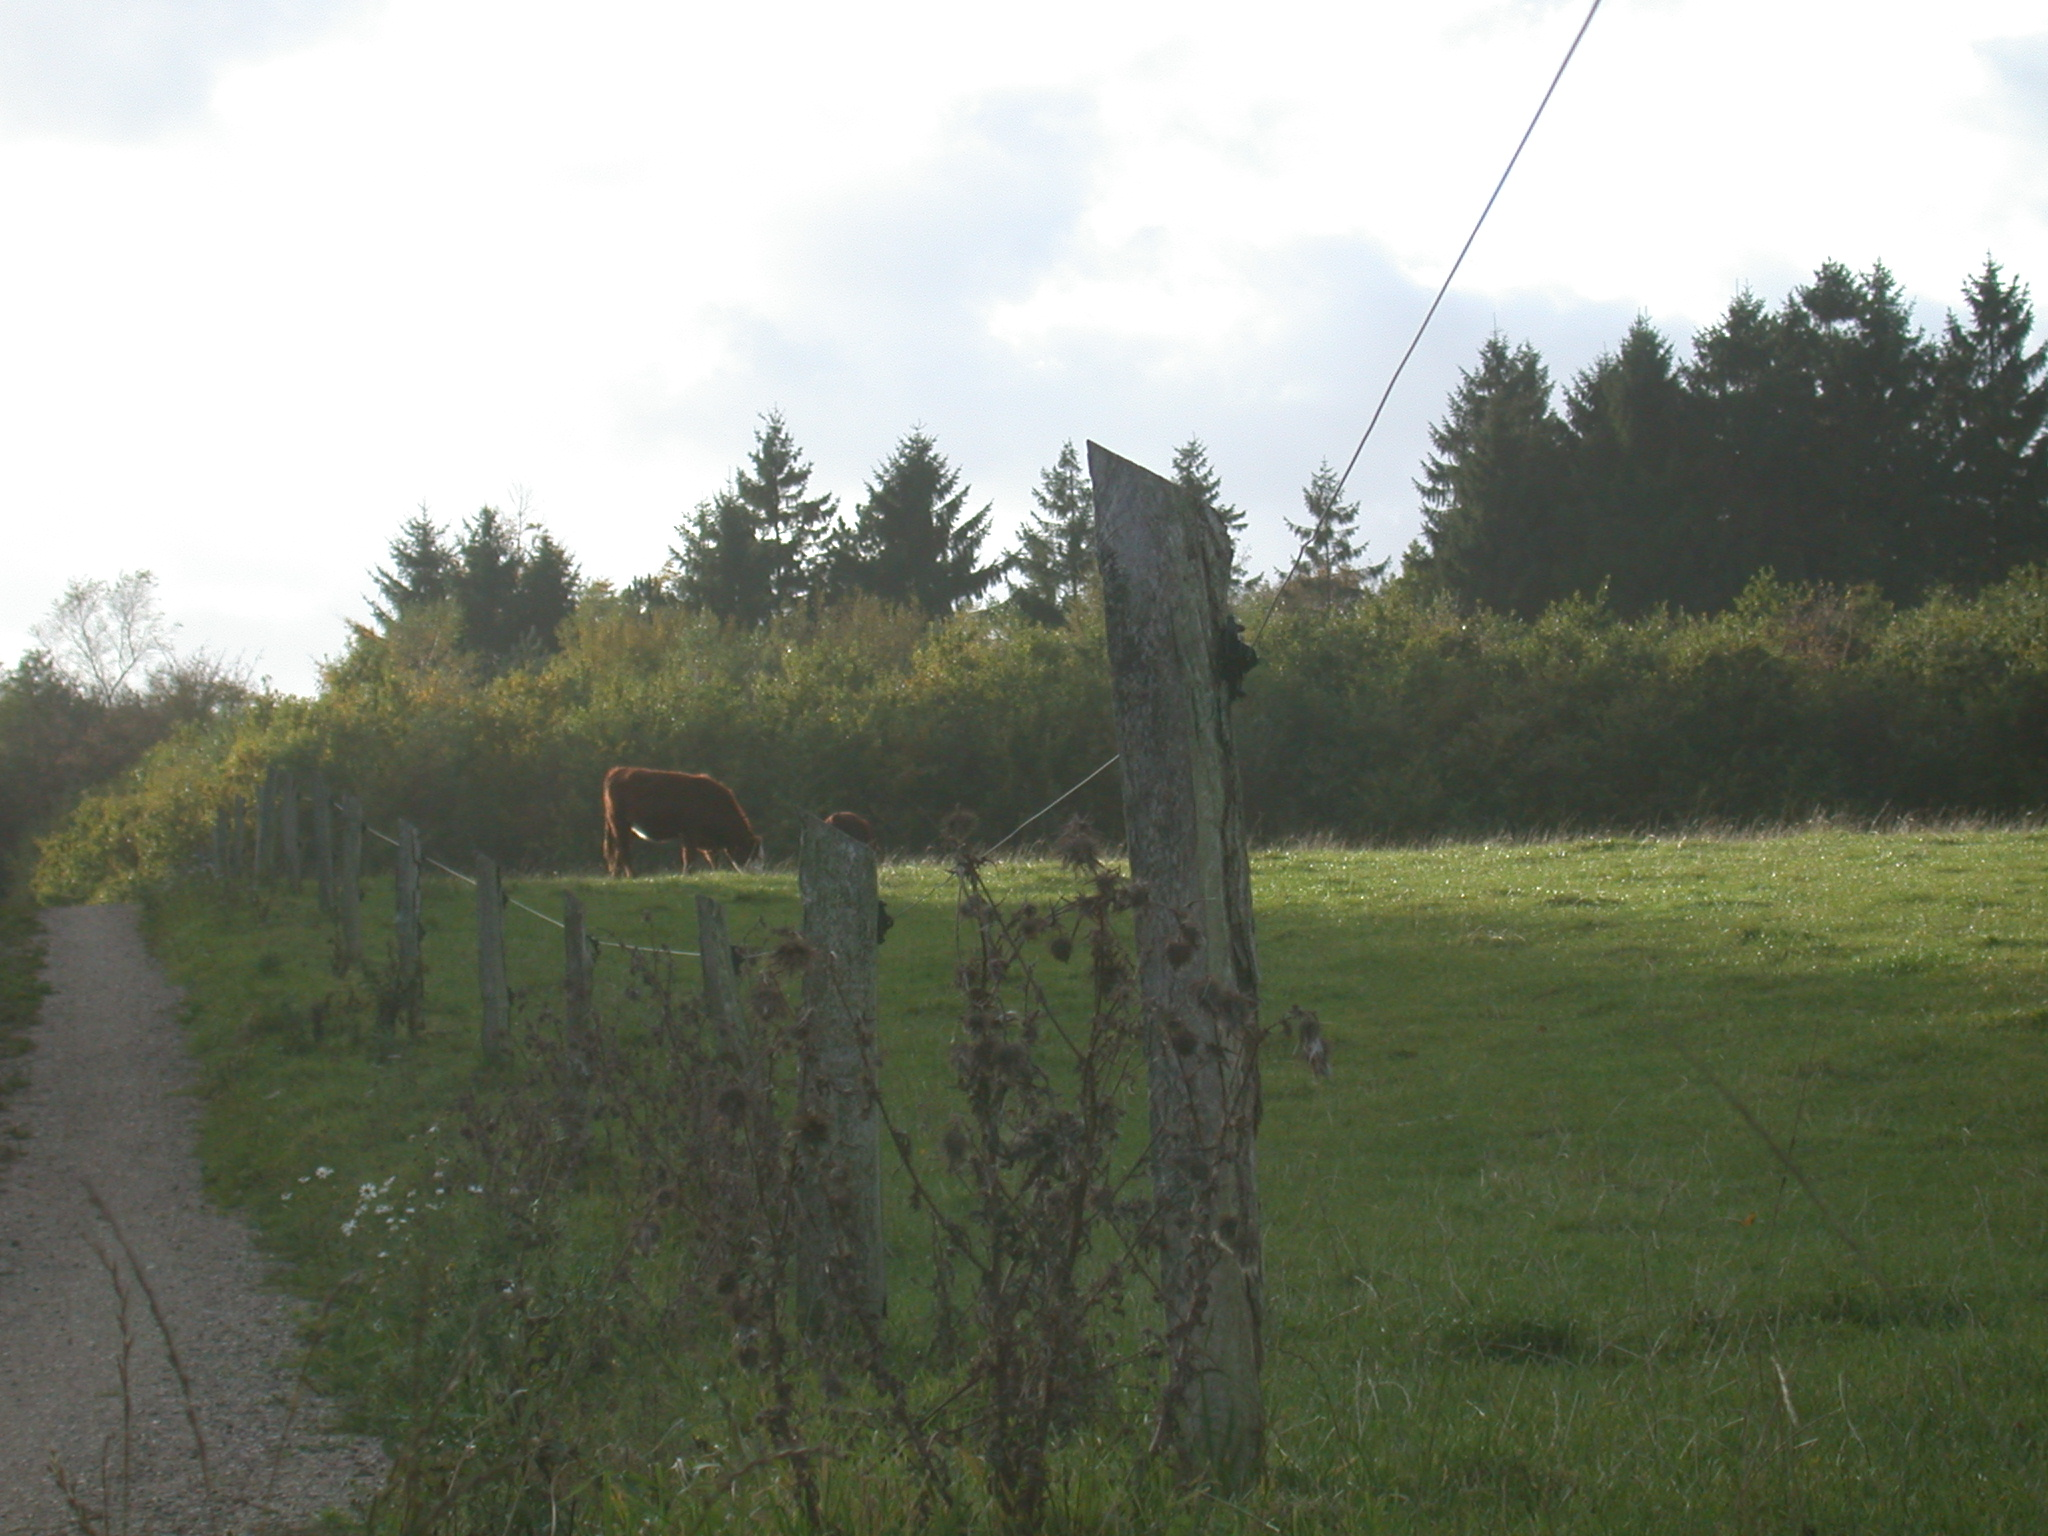 janneke field cow grazing summer warm fence countryside country